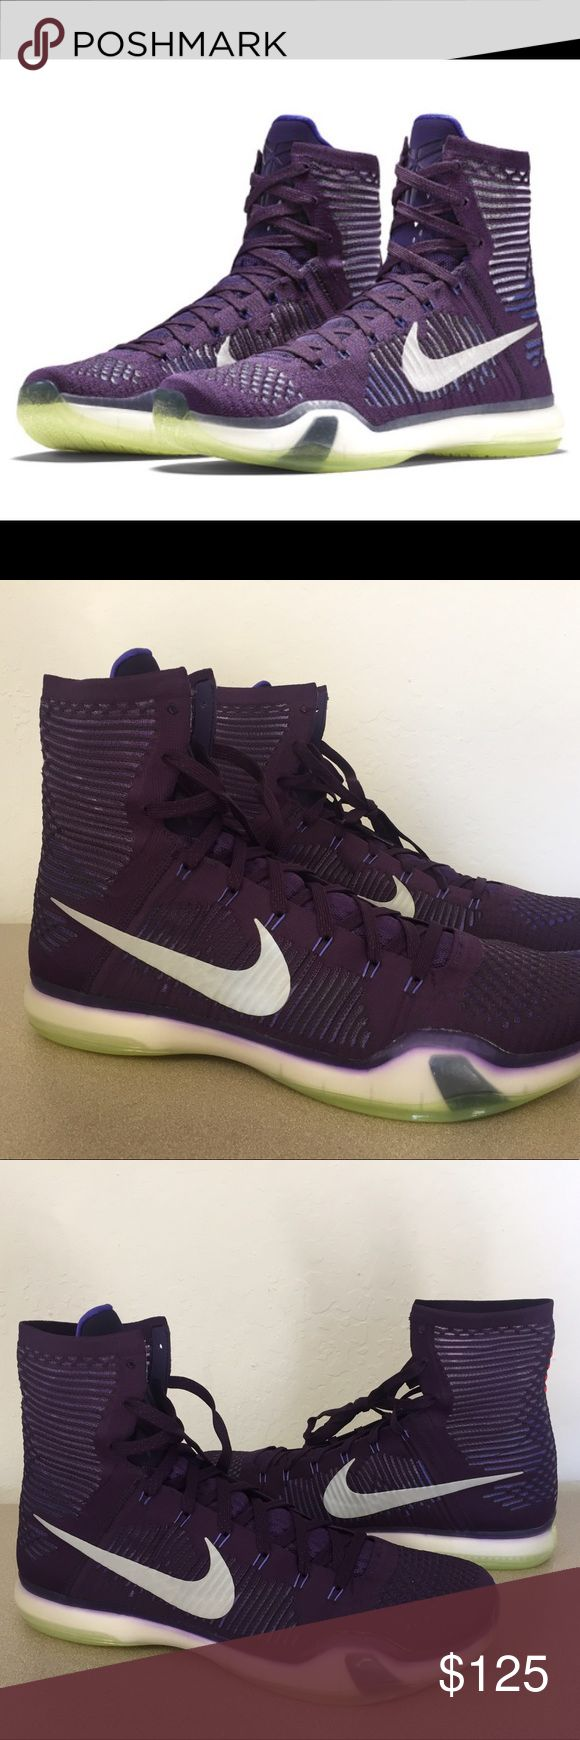 NIKE Kobe X Elite RARE Sz 19 Grand Purple Silver Brand : Nike  Style Code : 718763-505  Color : Grand Purple / Persian Violet-Volt-Reflect Silver  Size : US Men's 19  With a focus on speed and precision, the Nike Kobe X Elite features support and flexible cushioning. Kobe Bryant's tenth signature sneaker also has a Flyknit upper, Nike Zoom technology, Lunarlon foam with flex grooves, integrated Flywire cables, and a durable rubber outsole.  BRAND NEW. NO BOX. NEVER WORN.   100% AUTHENTIC…